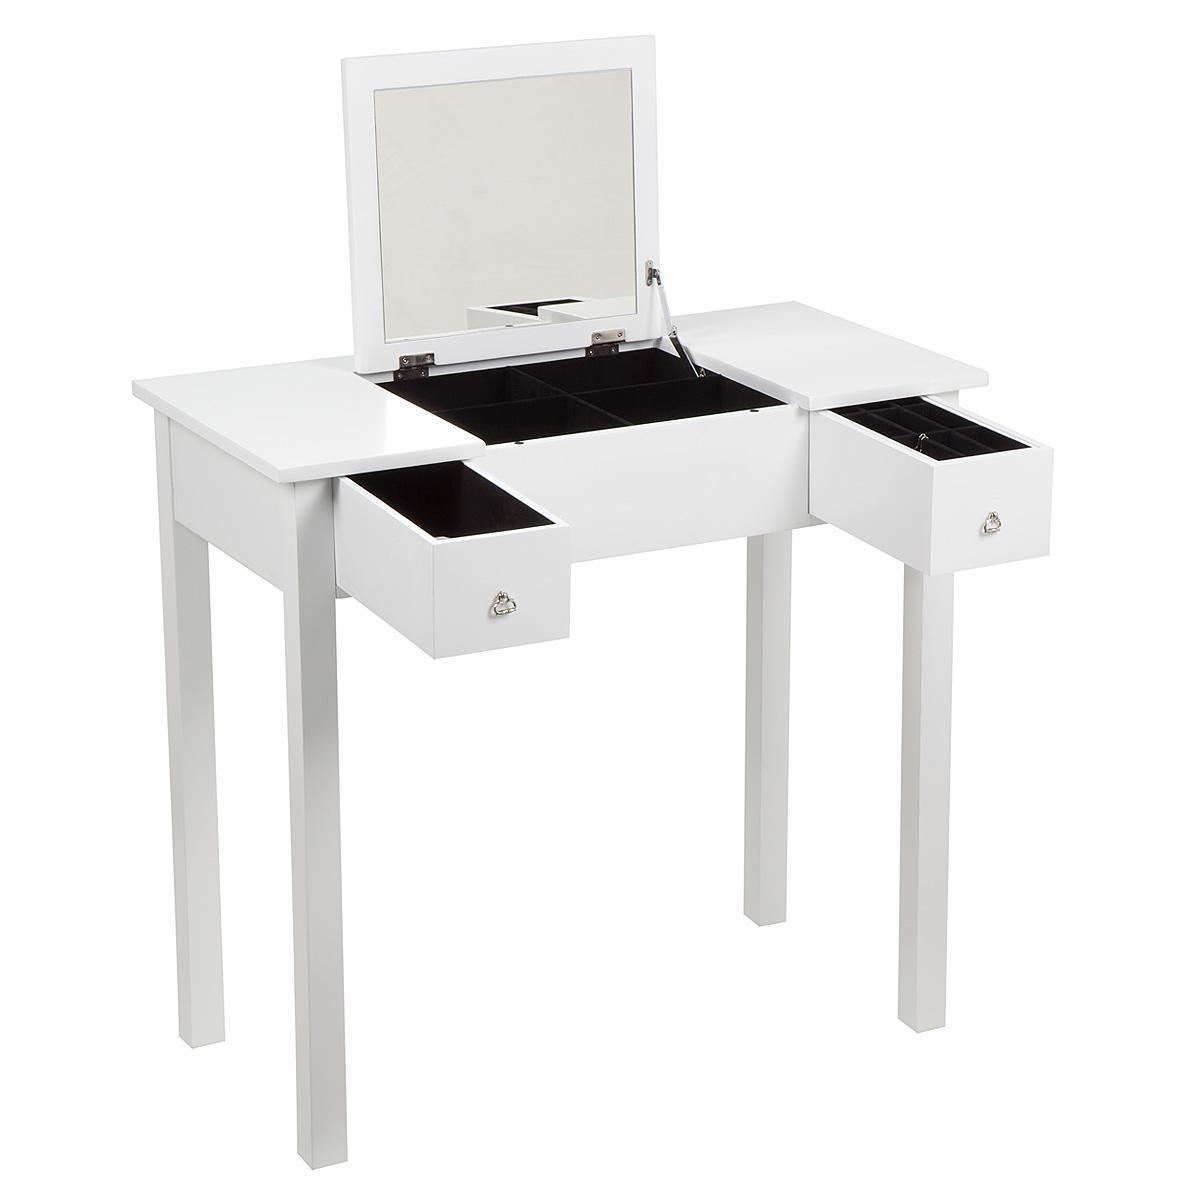 Bedroom Dressing Room Table With Folding Vanity Mirror